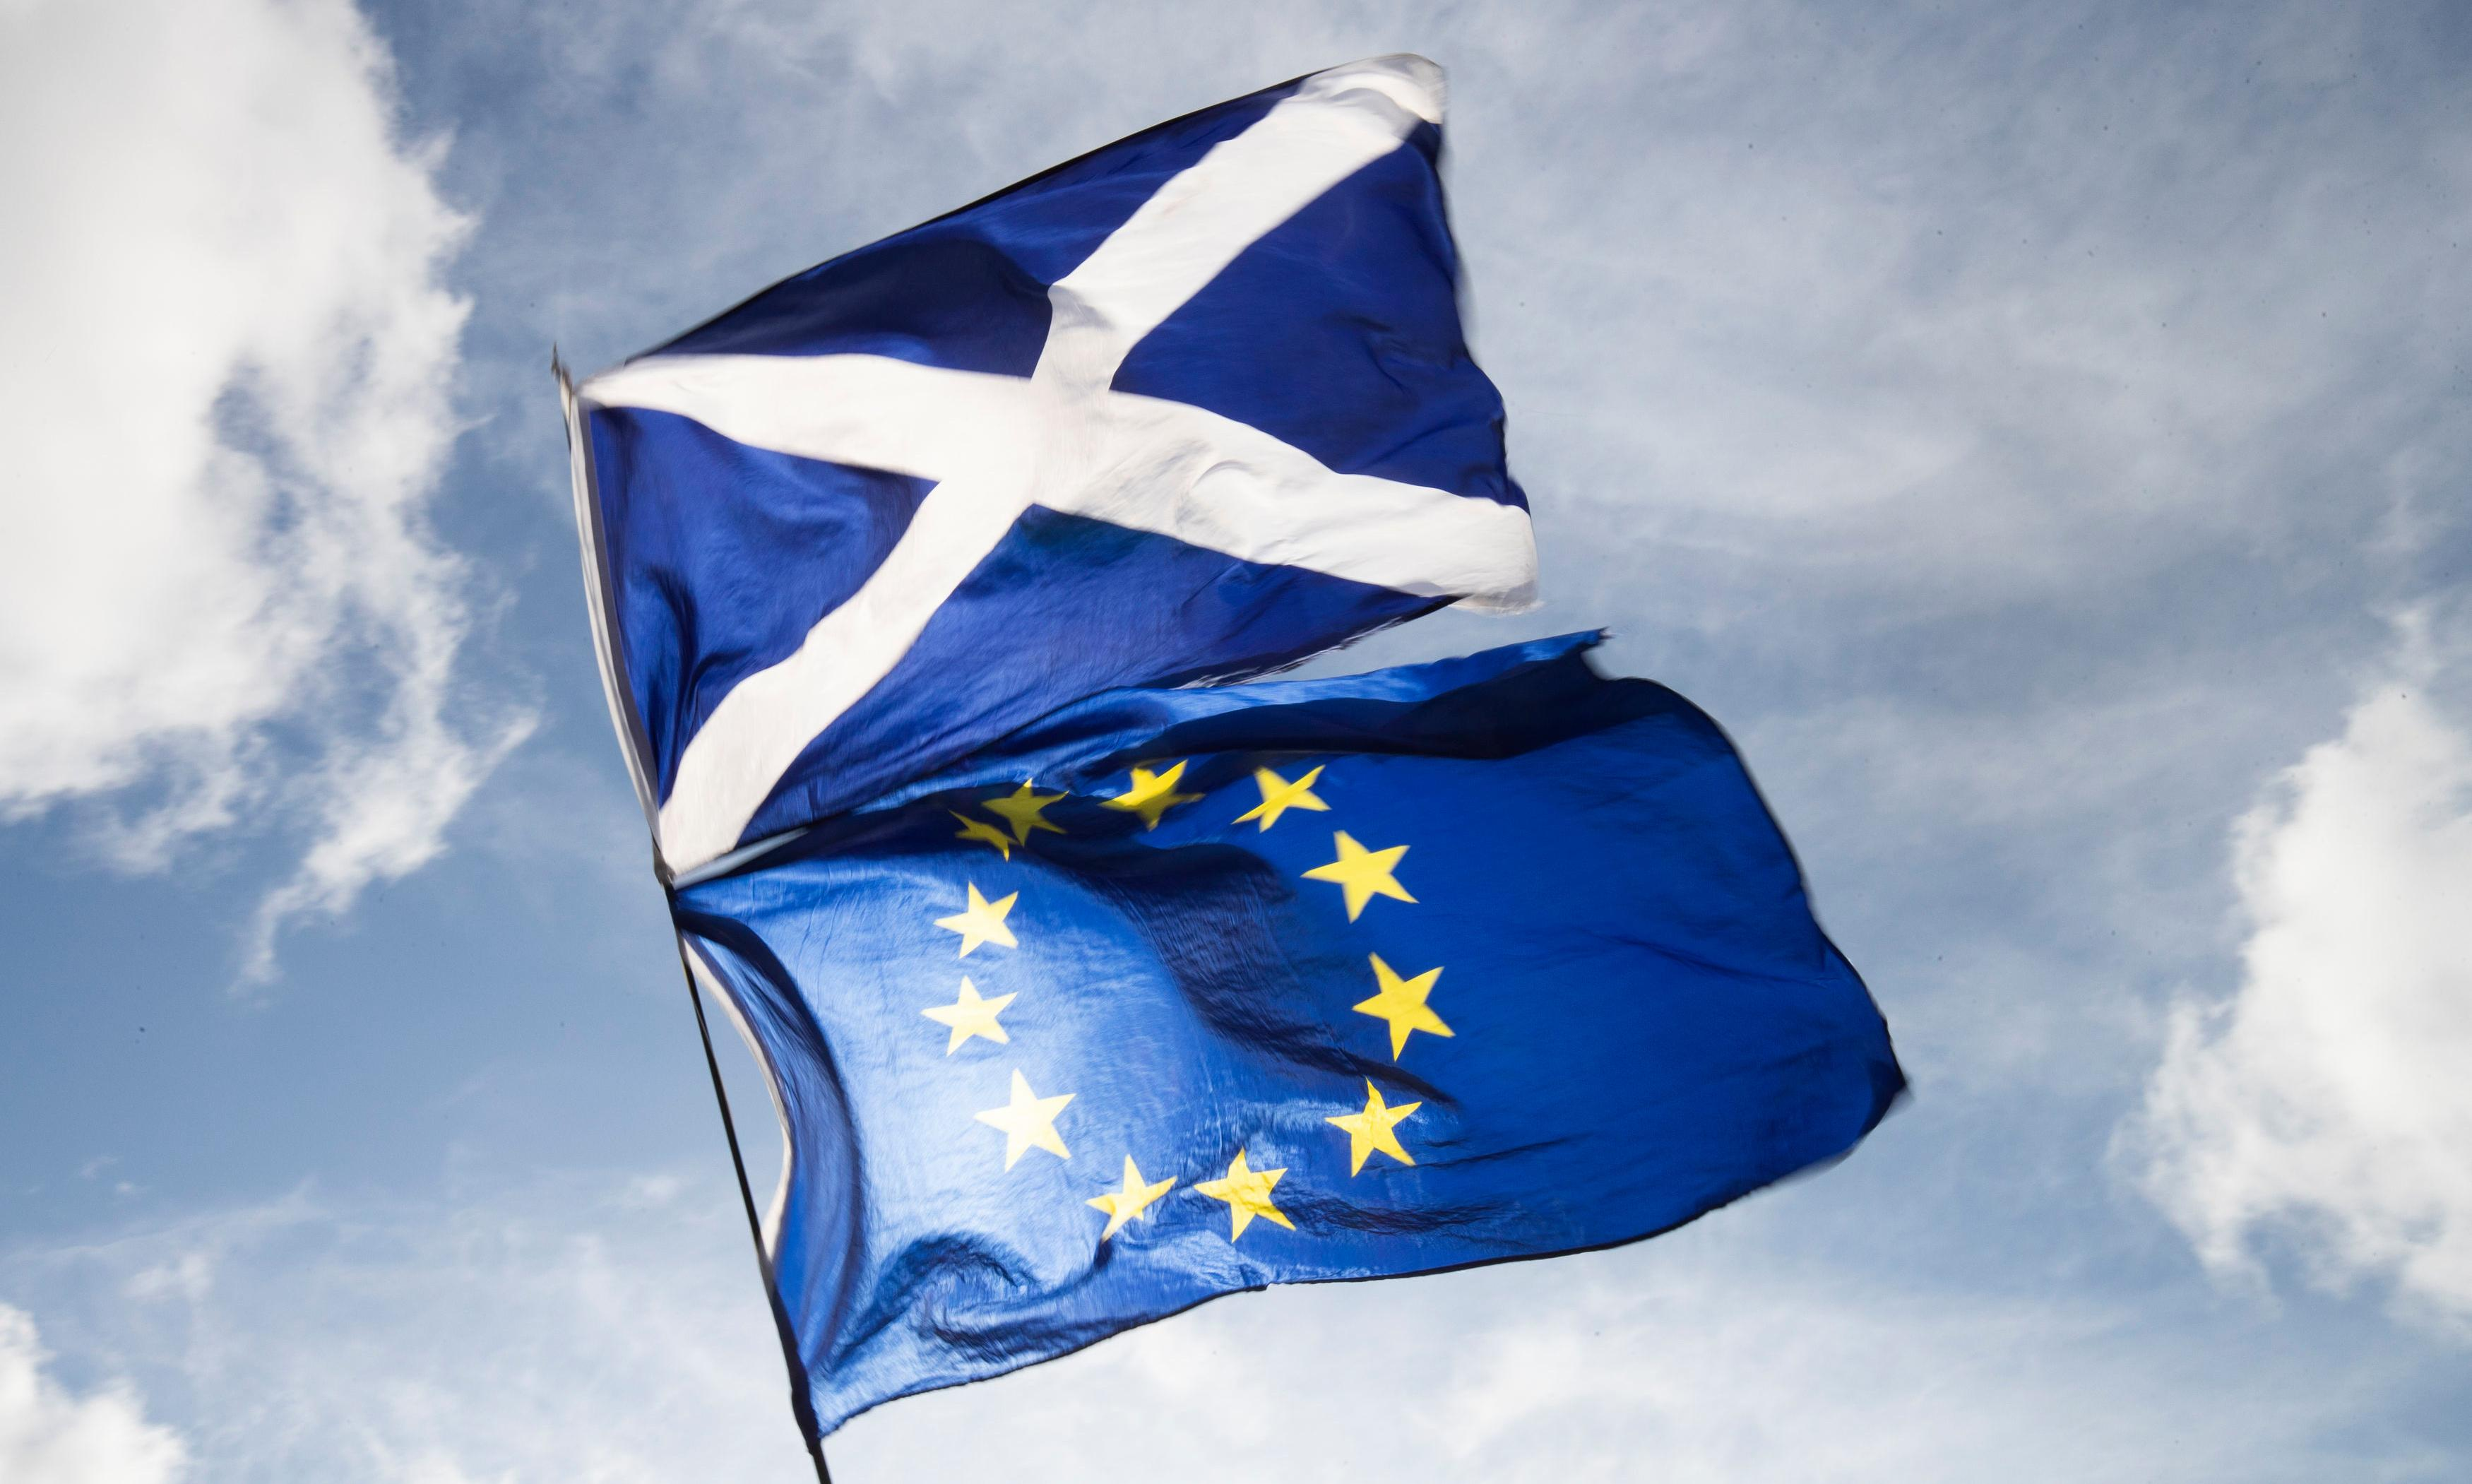 The drive for Scottish independence is distinct from nationalism